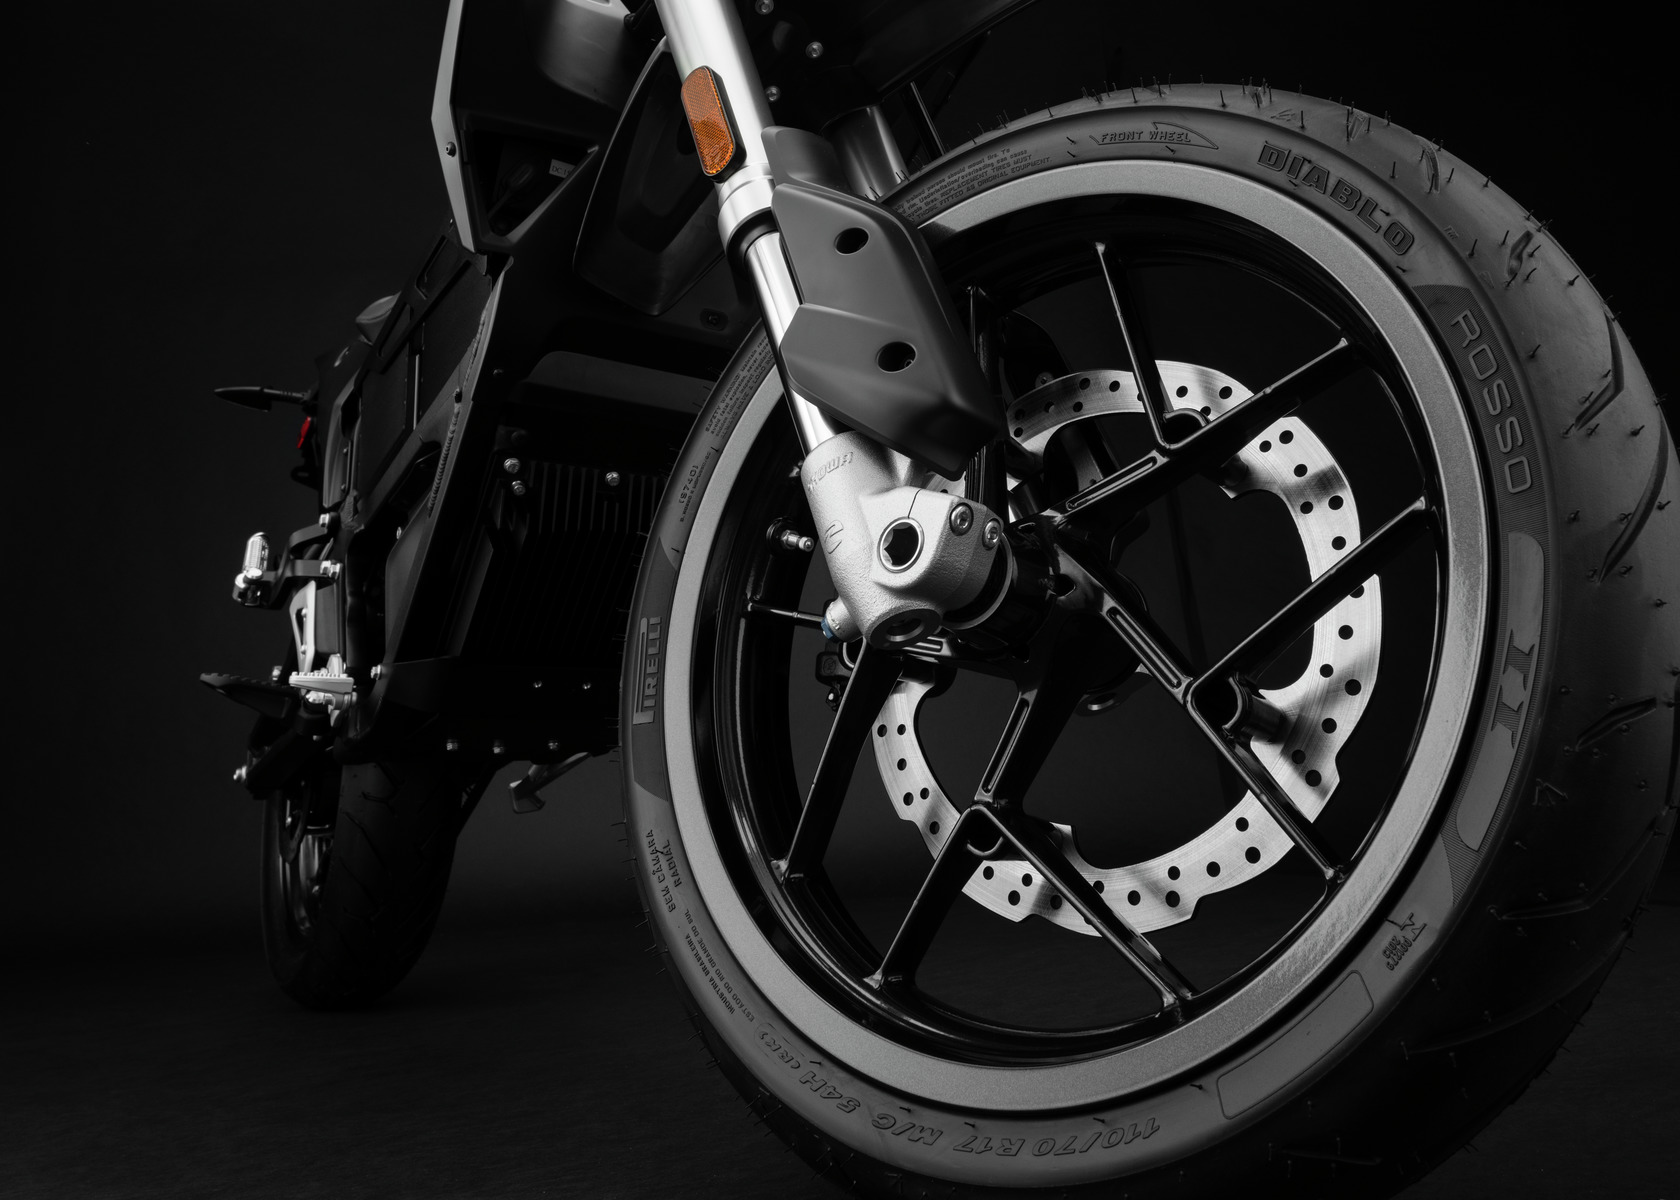 2016 Zero FXS Electric Motorcycle: Front Wheel